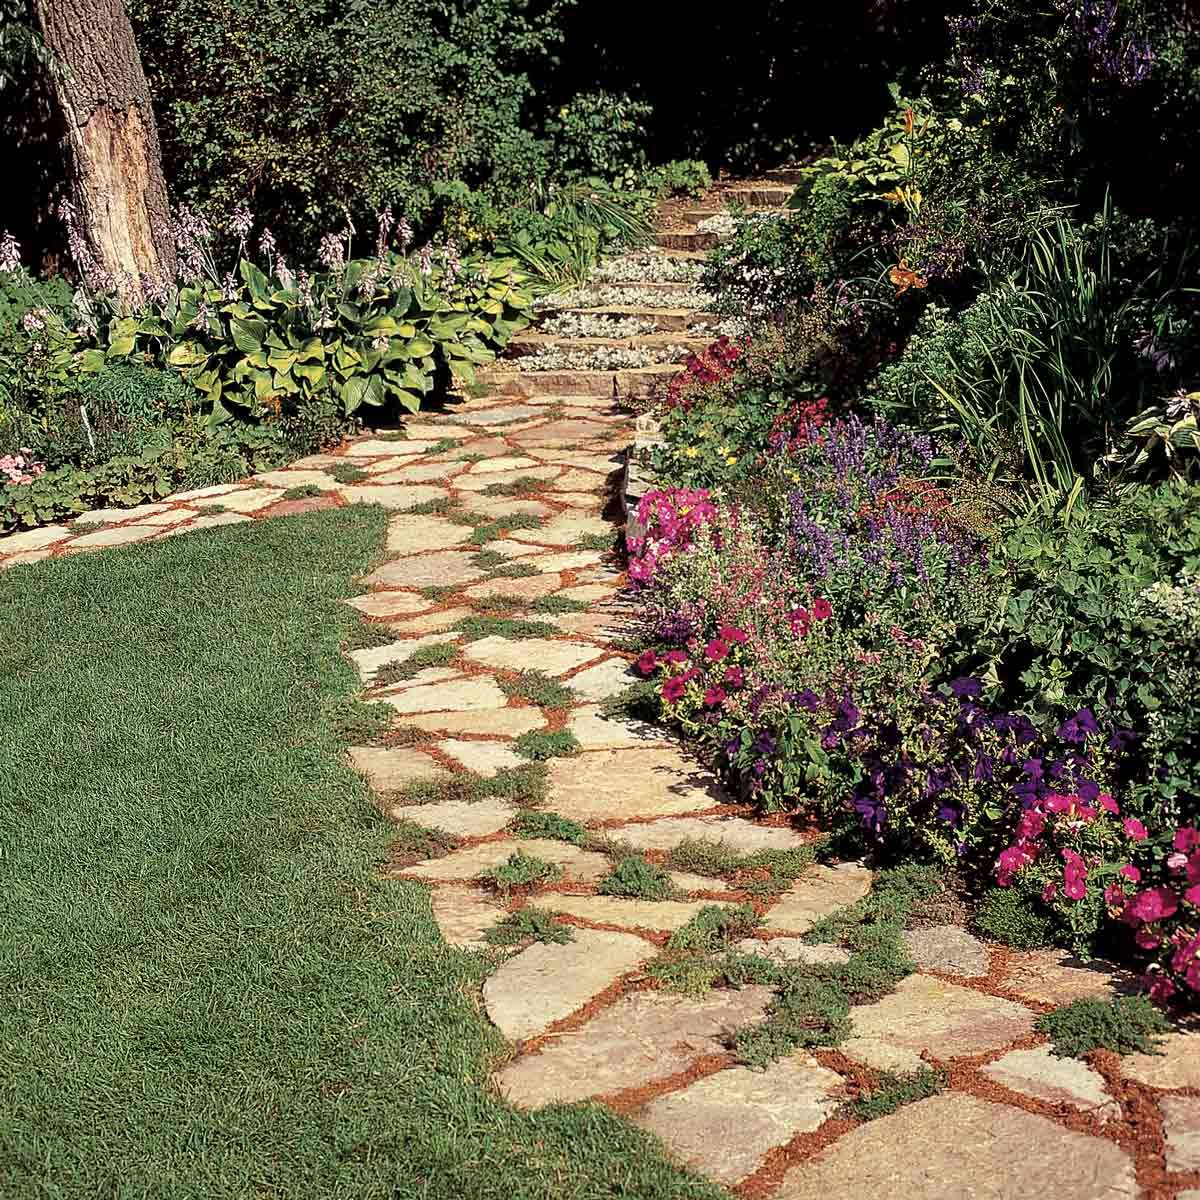 Tips for Building a Stepping-Stone Path